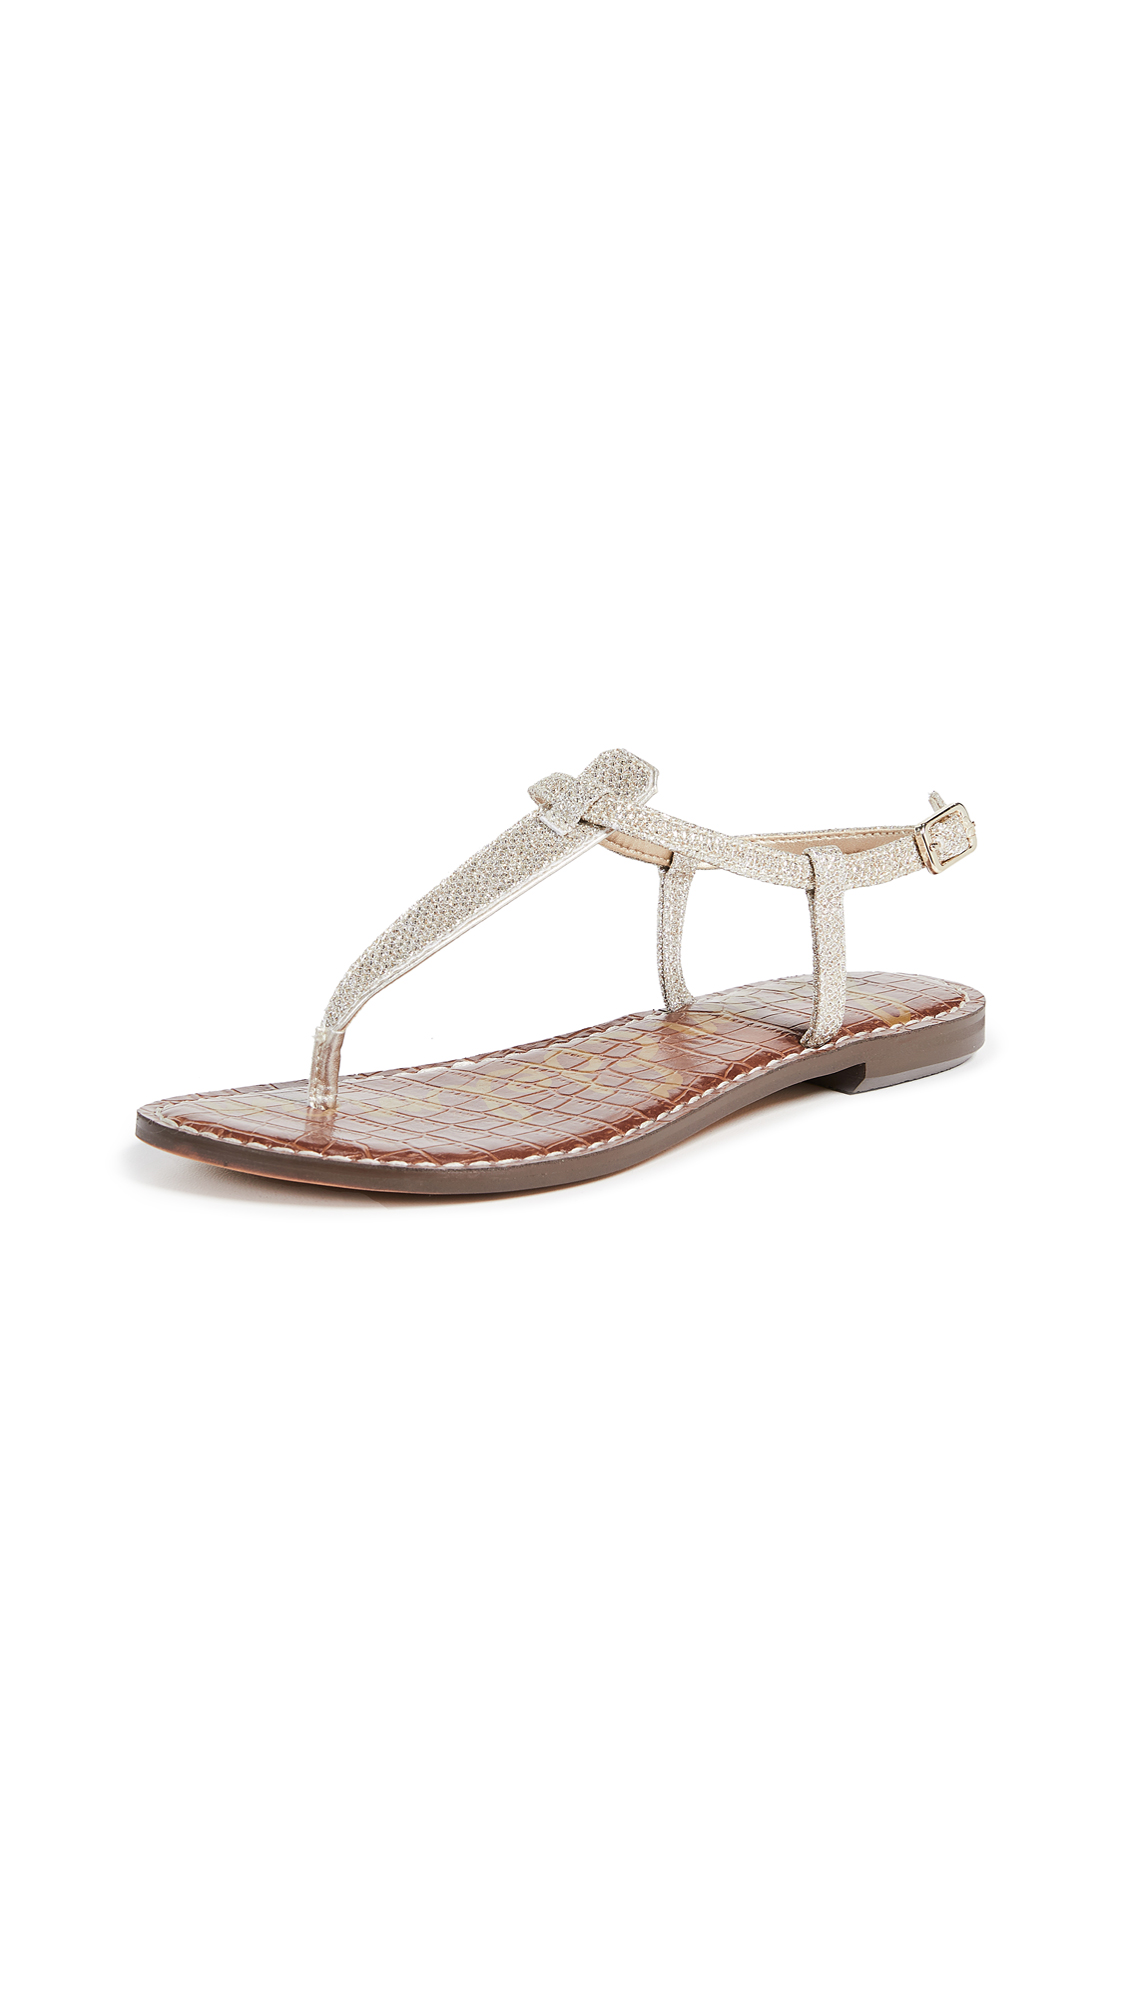 Sam Edelman Gigi Flat Sandals In Jute